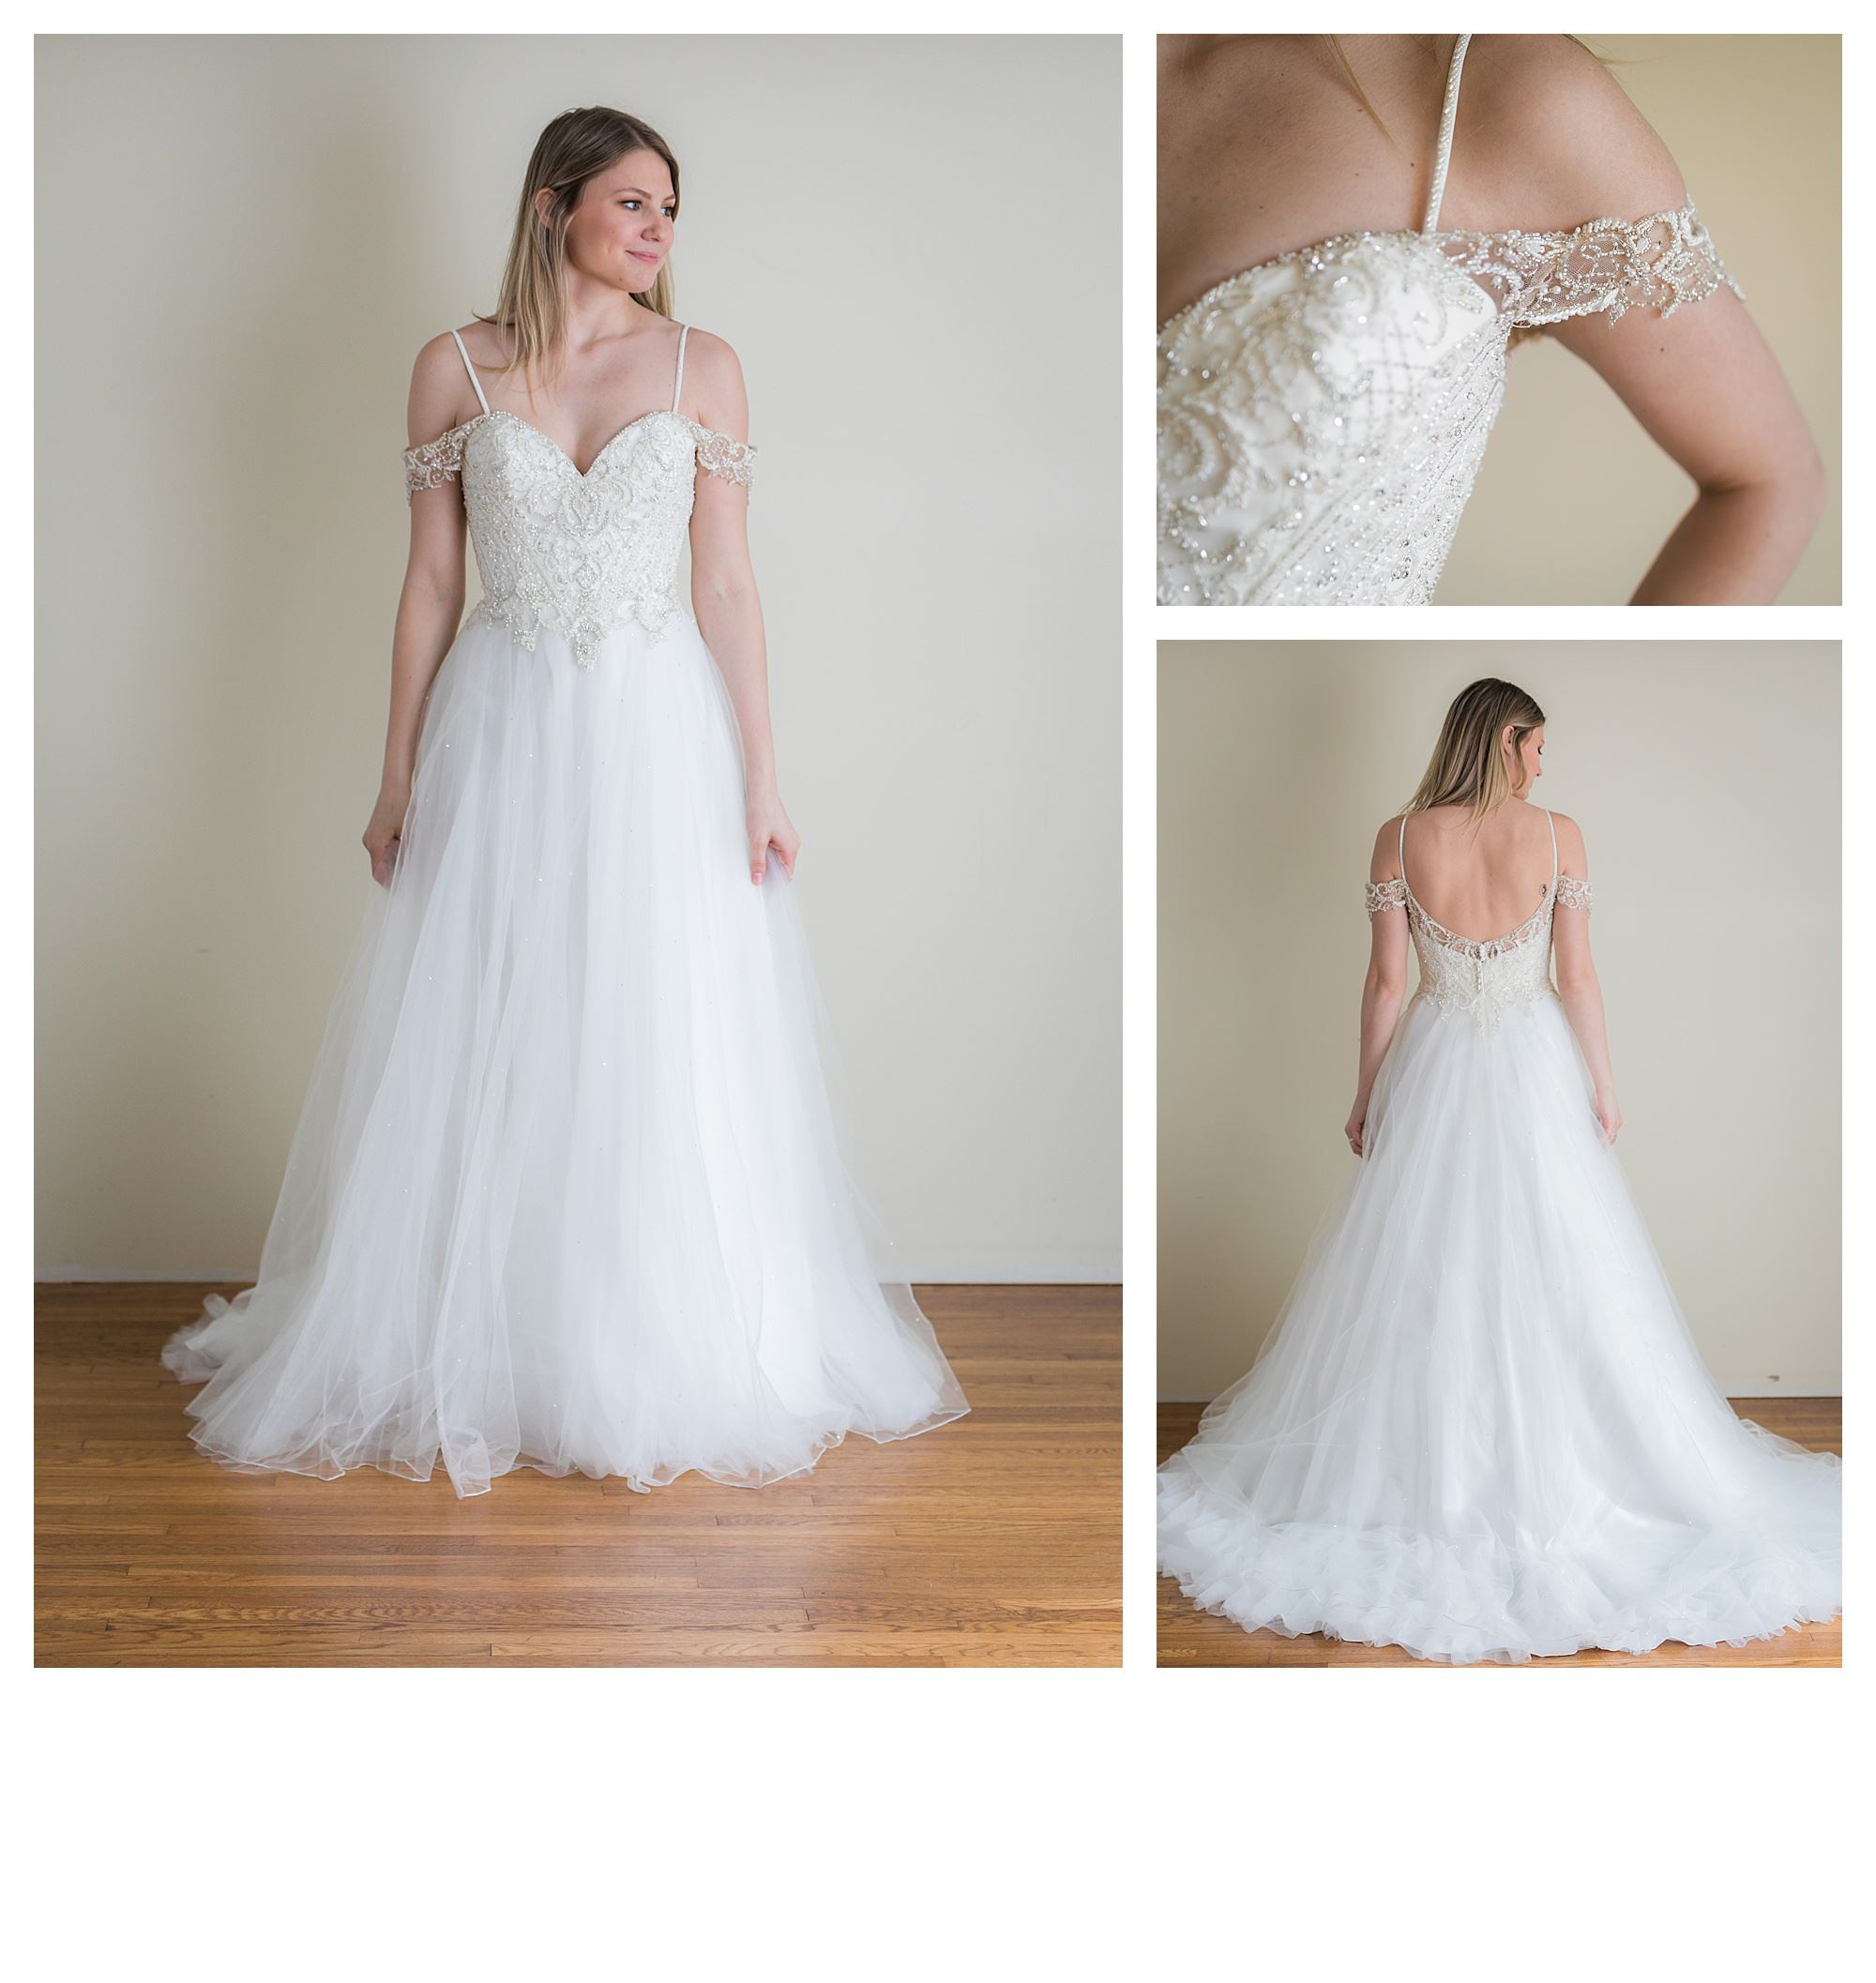 Shyanne - Size 10 - Ivory/Nude - Originally priced $2399 - Sample box price $1599